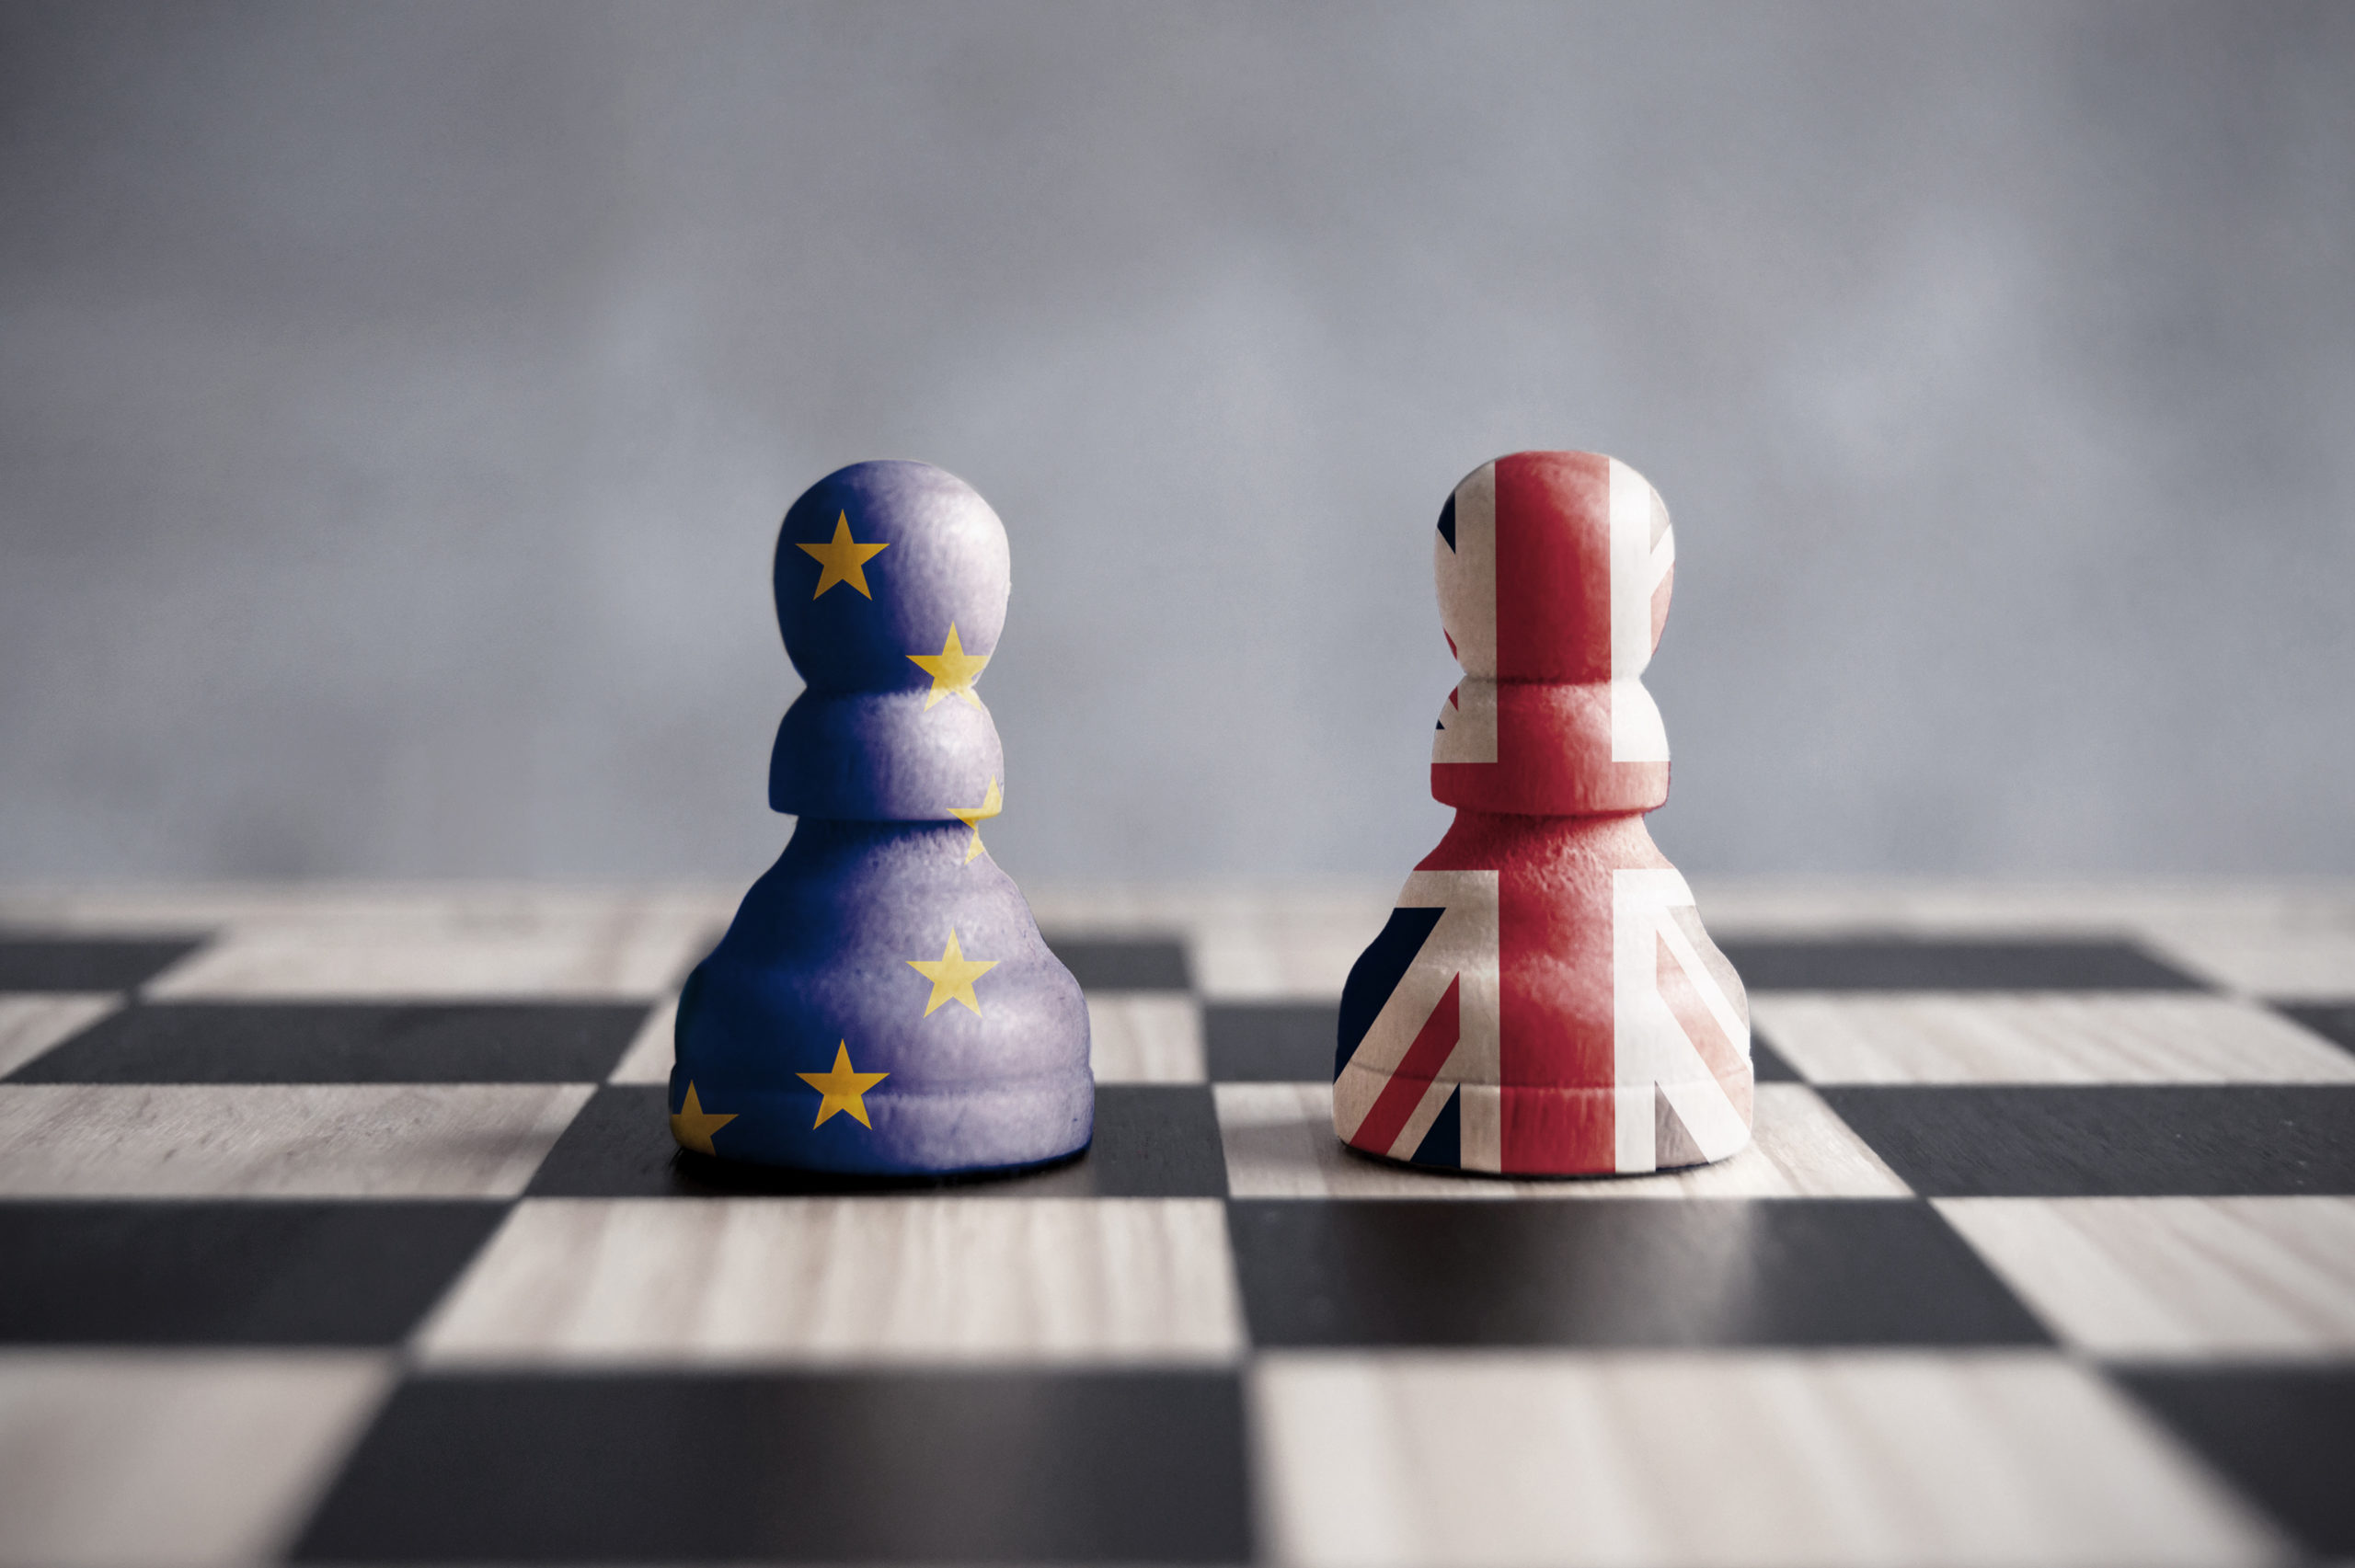 EU and UK pawns on a chessboard